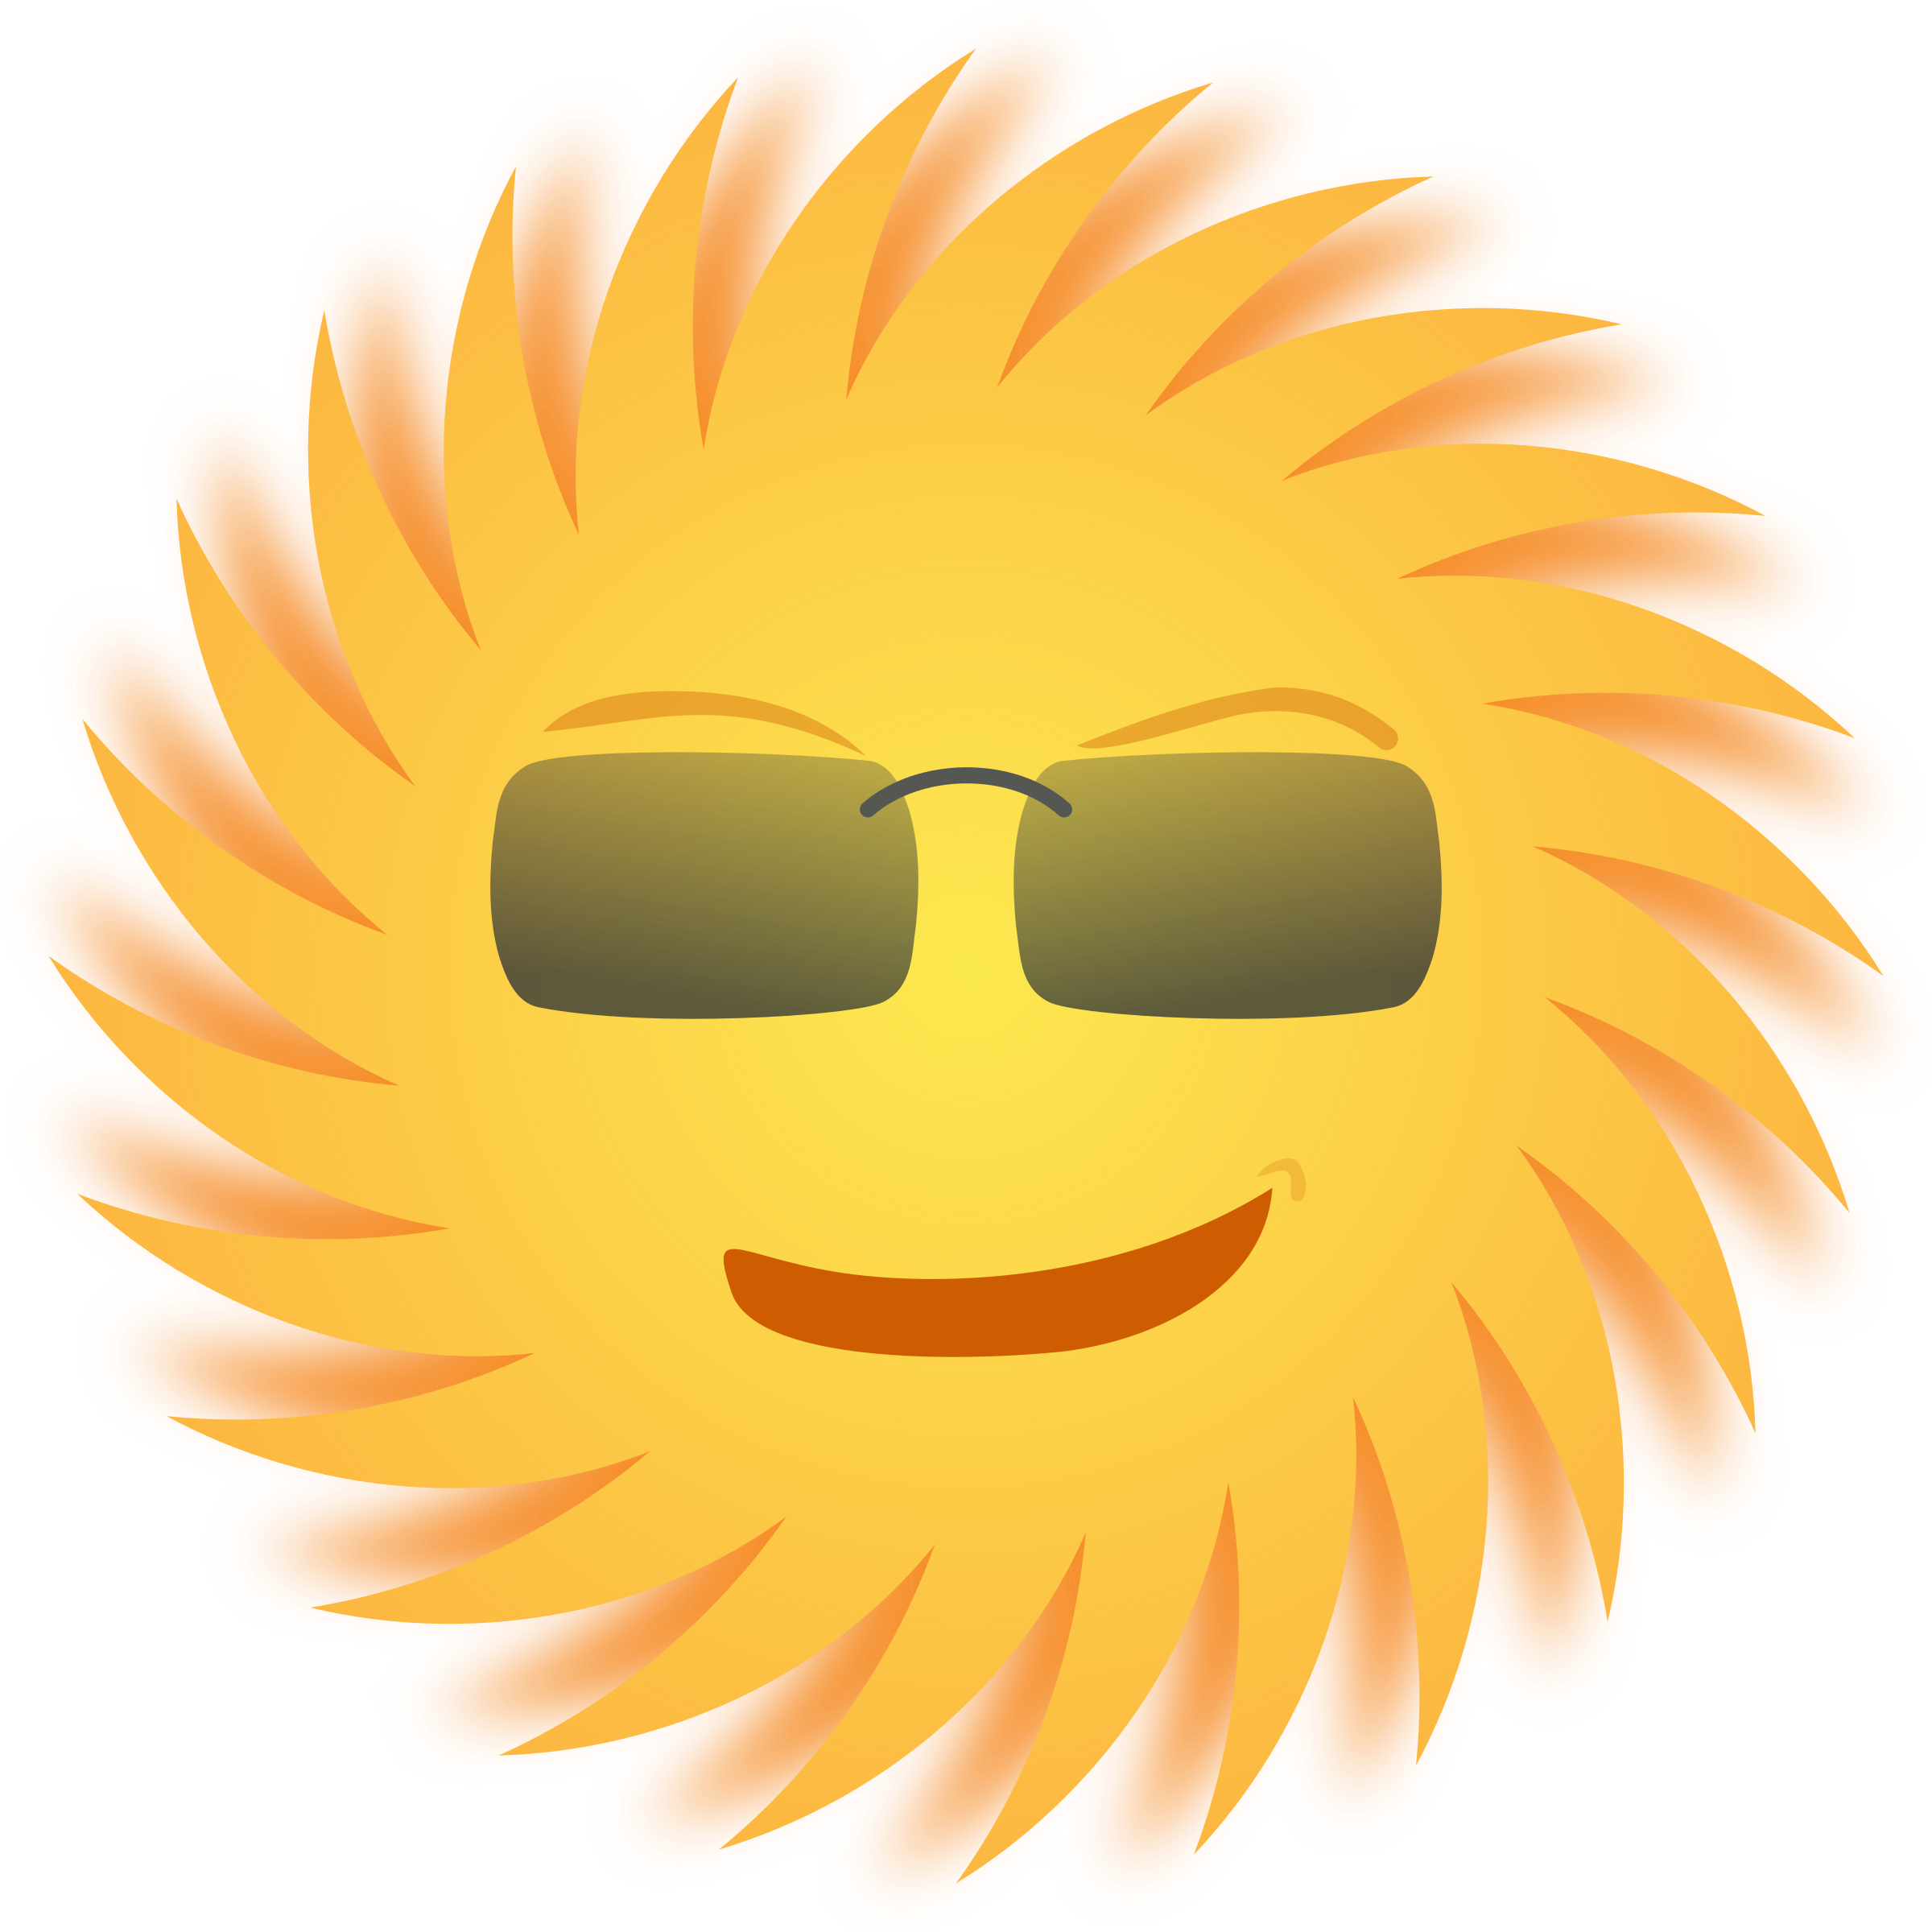 Mr. Sun by carlitos